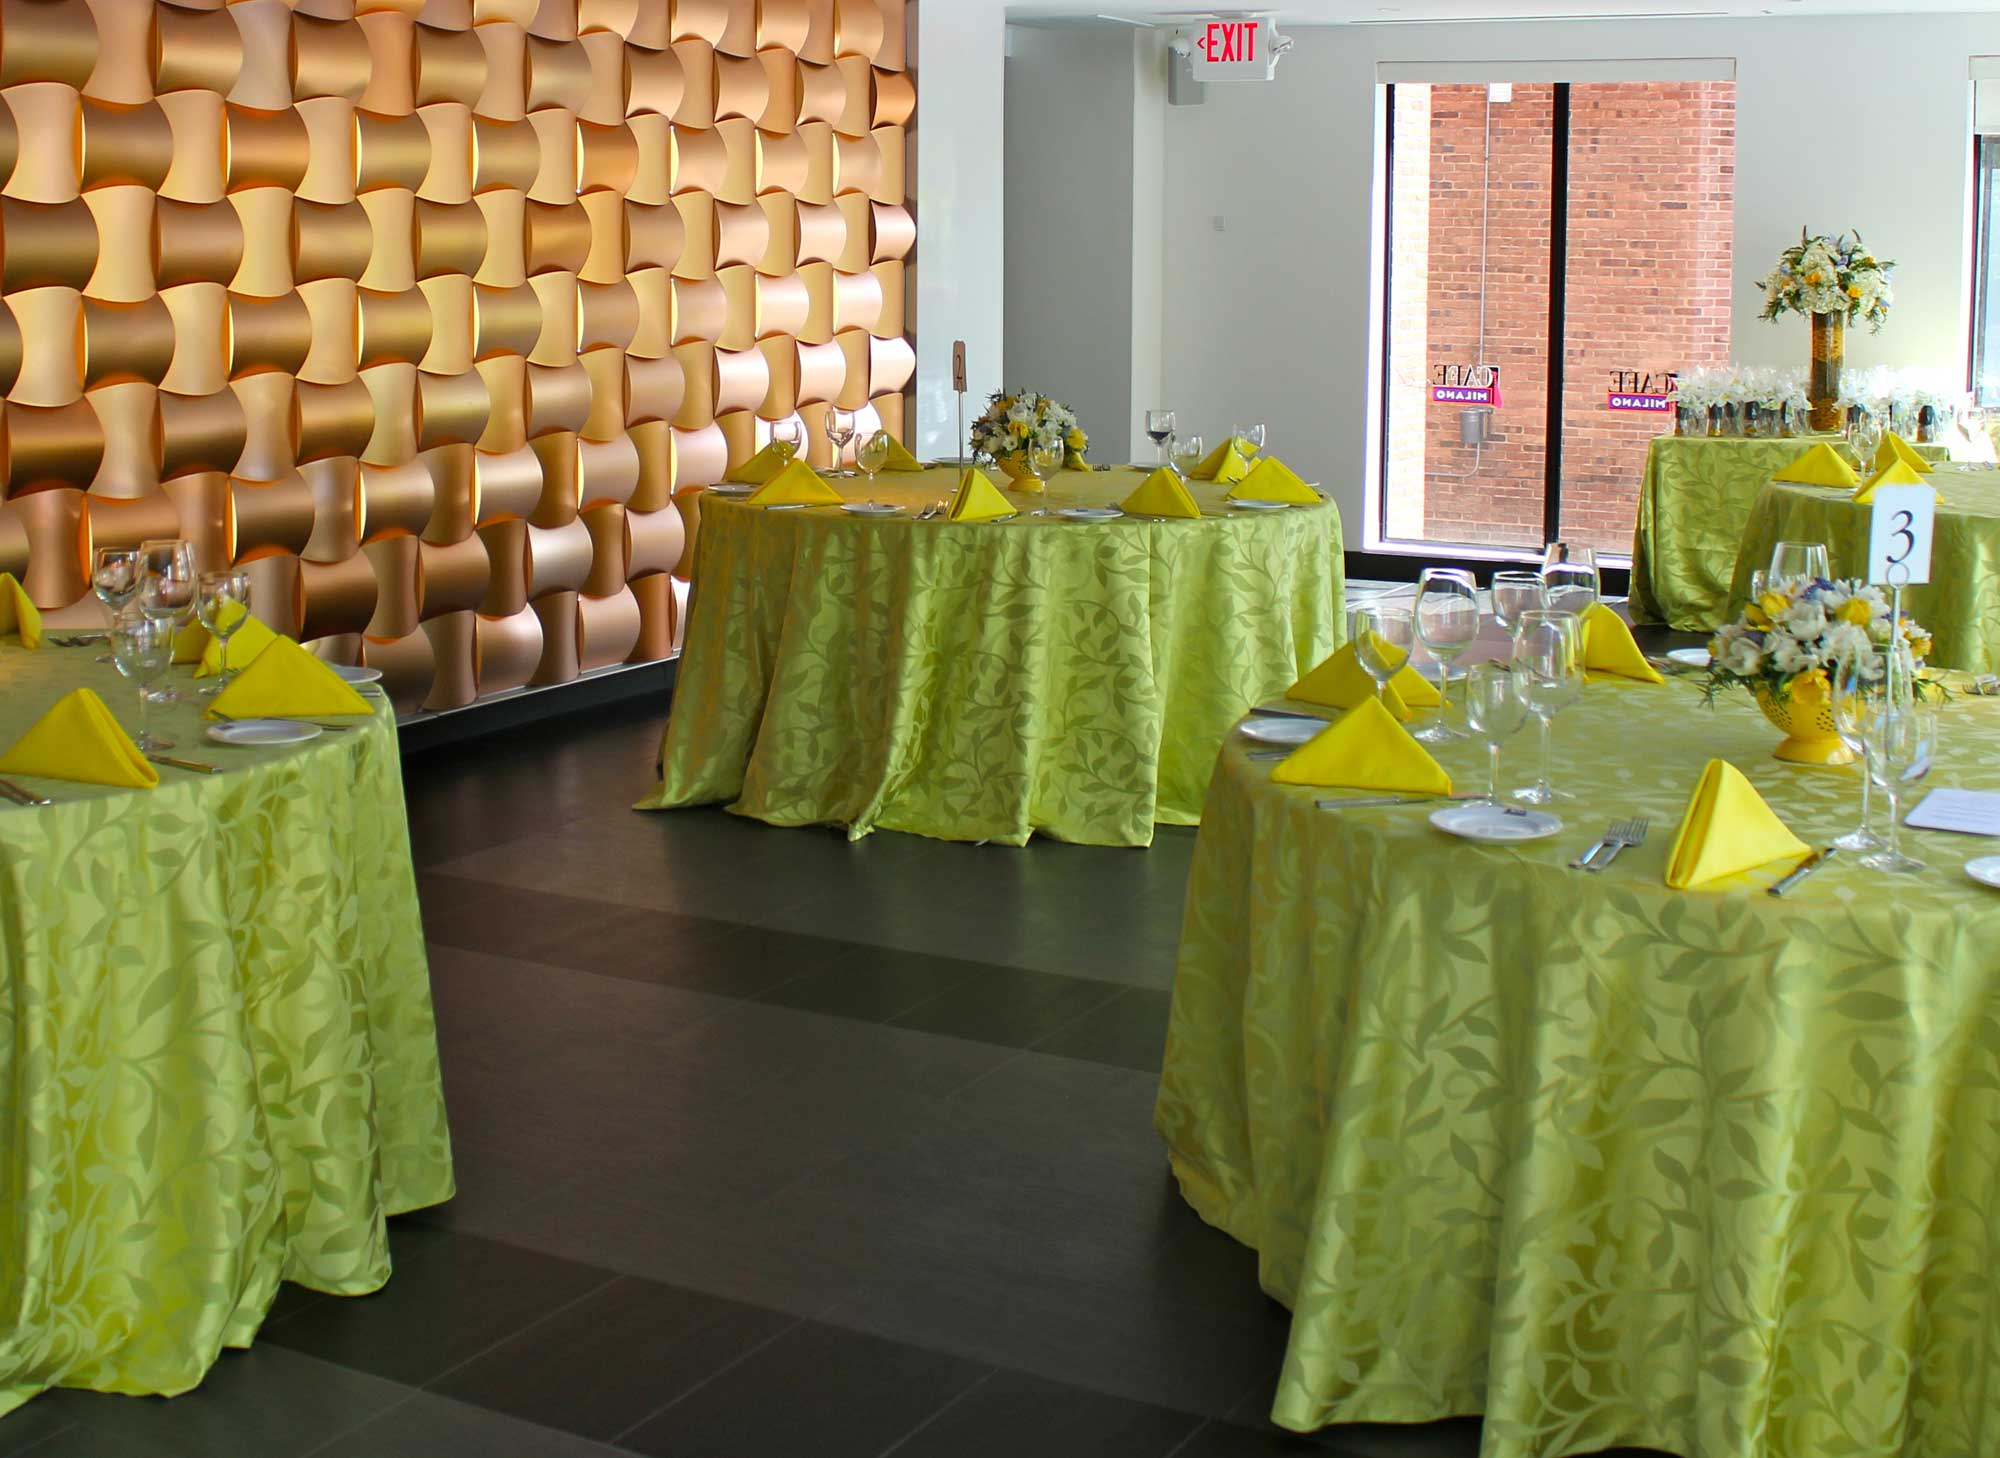 THE WINE ROOM event space at Cafe Milano in Washington DC, Maryland, Virginia, DC Area